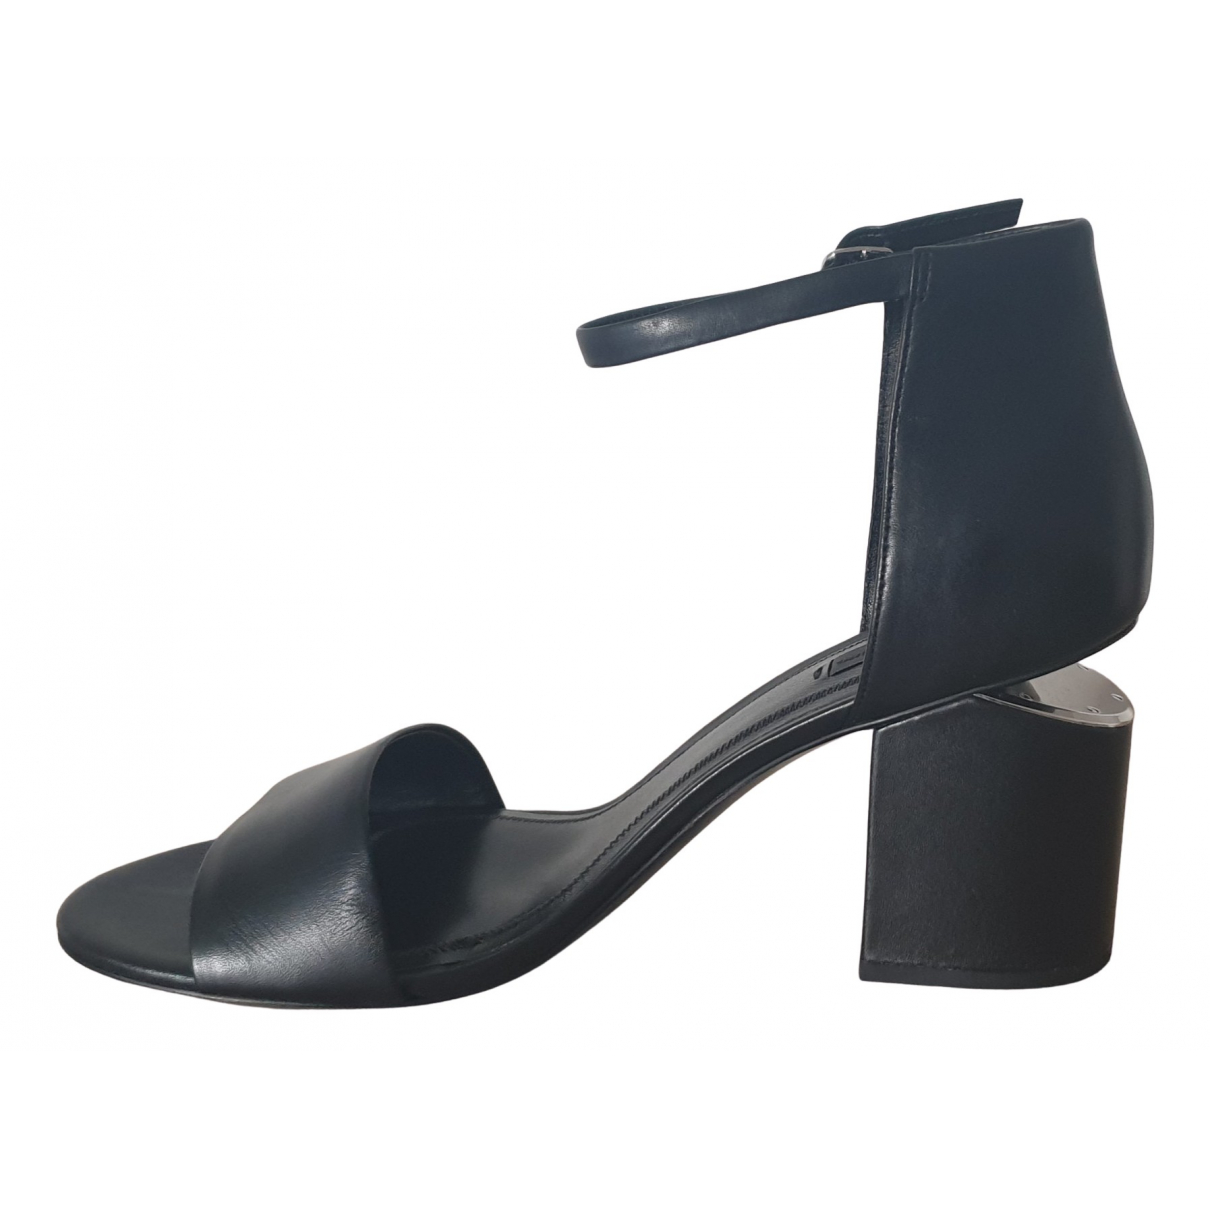 Alexander Wang N Black Leather Sandals for Women 41 EU